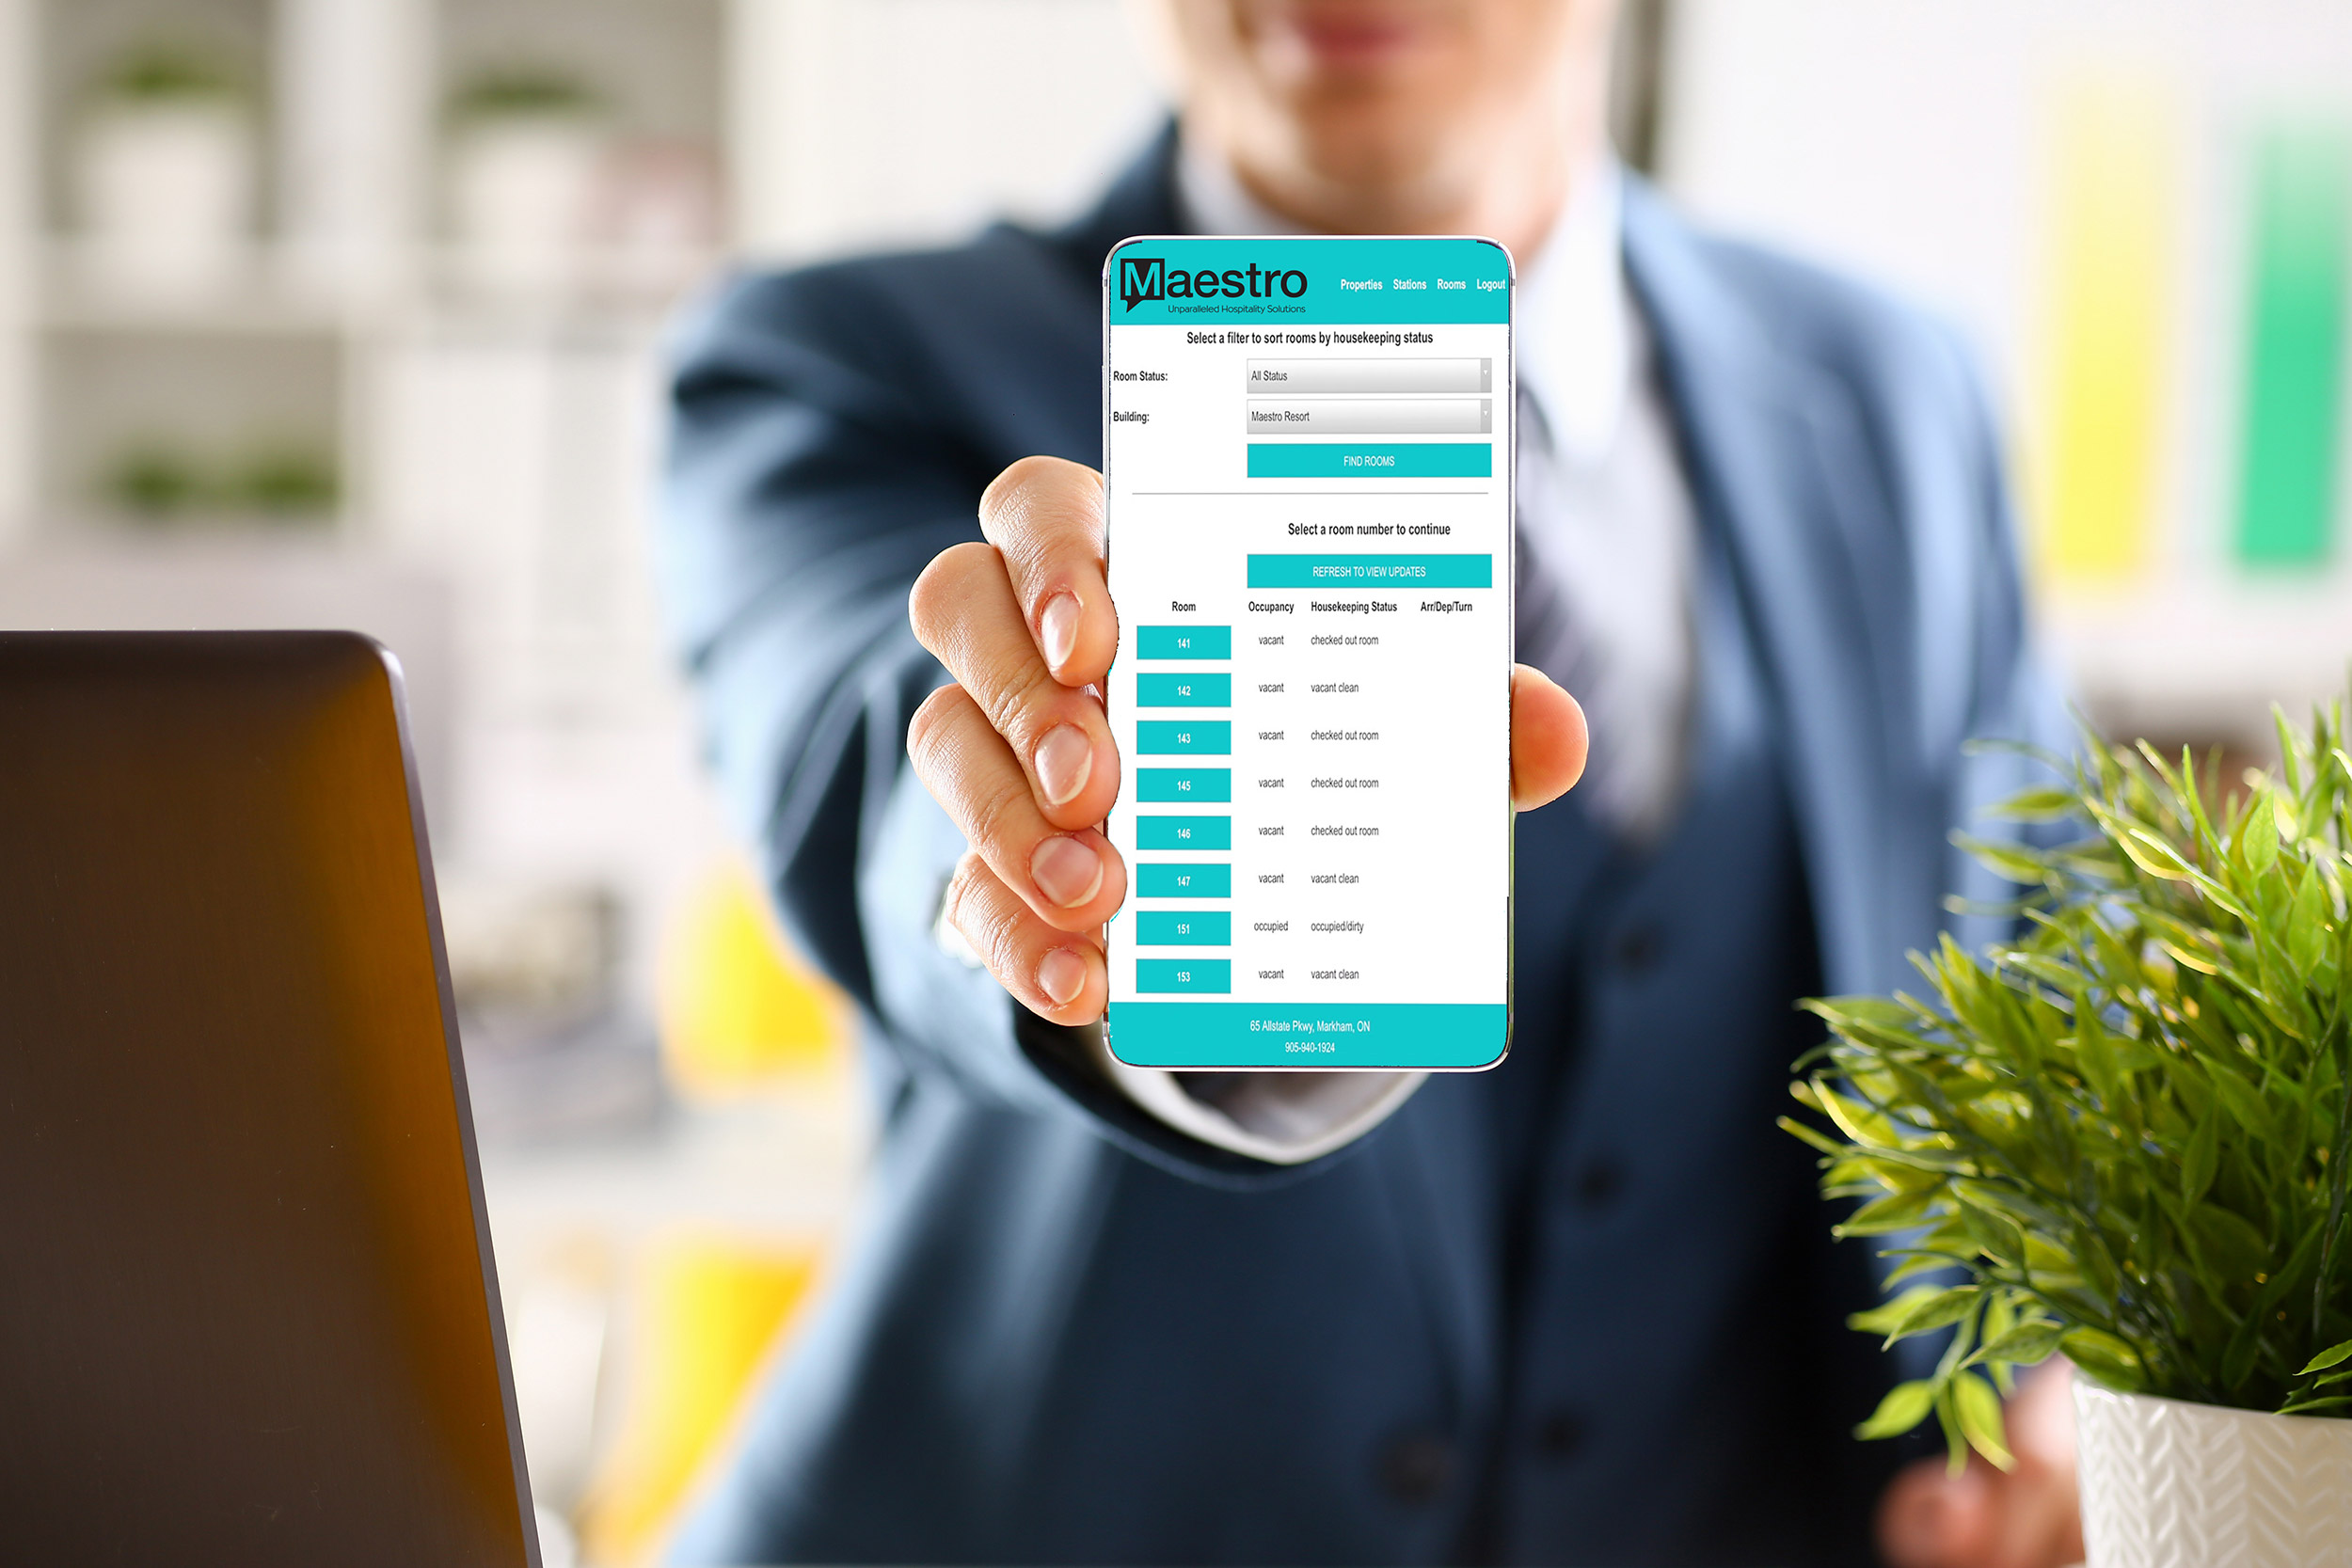 maestro header image - What Hoteliers Want from Their PMS in 2021; Top Features Requested by Hoteliers as They Prepare for Reopening - Innovative Property Management Software Solutions Powering Hotels, Resorts & Multi‑Property Groups.